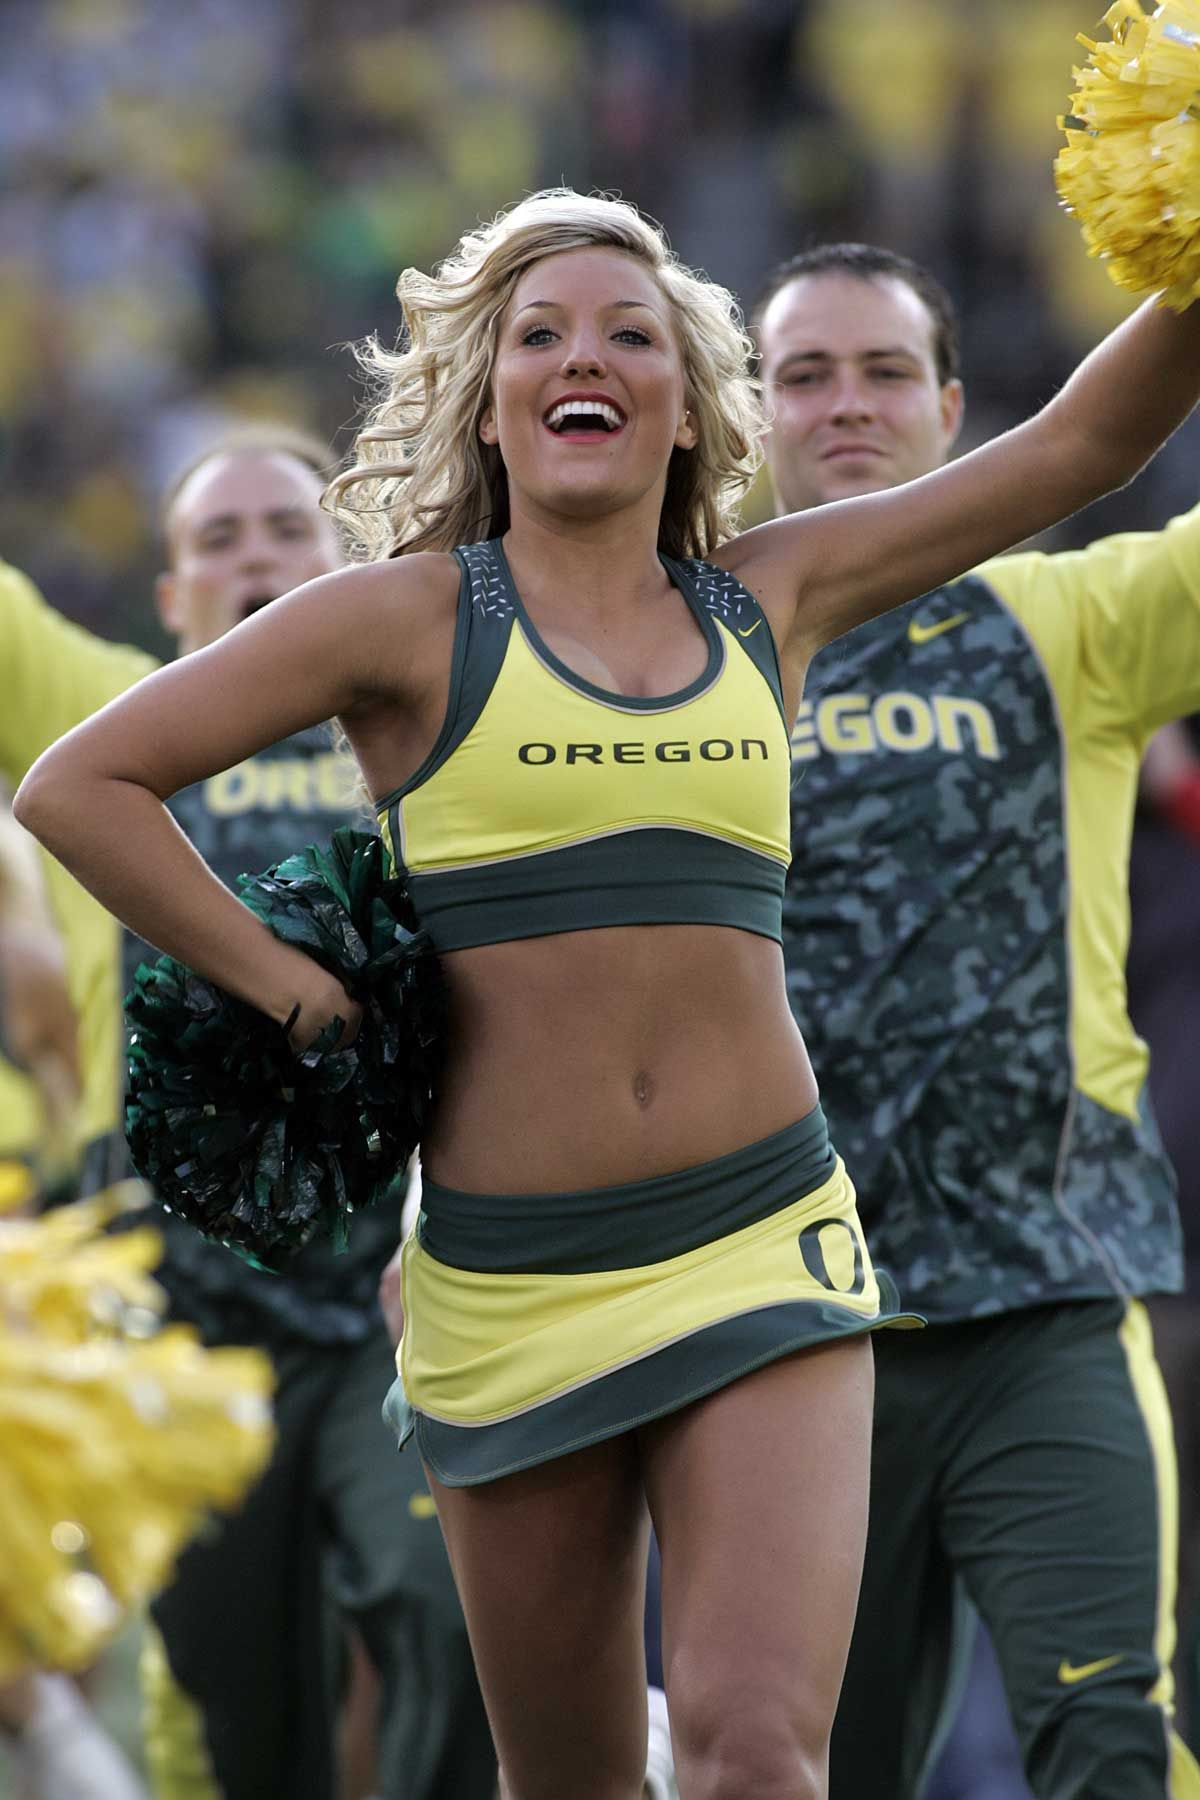 You oregon cheerleaders showing their boobs not